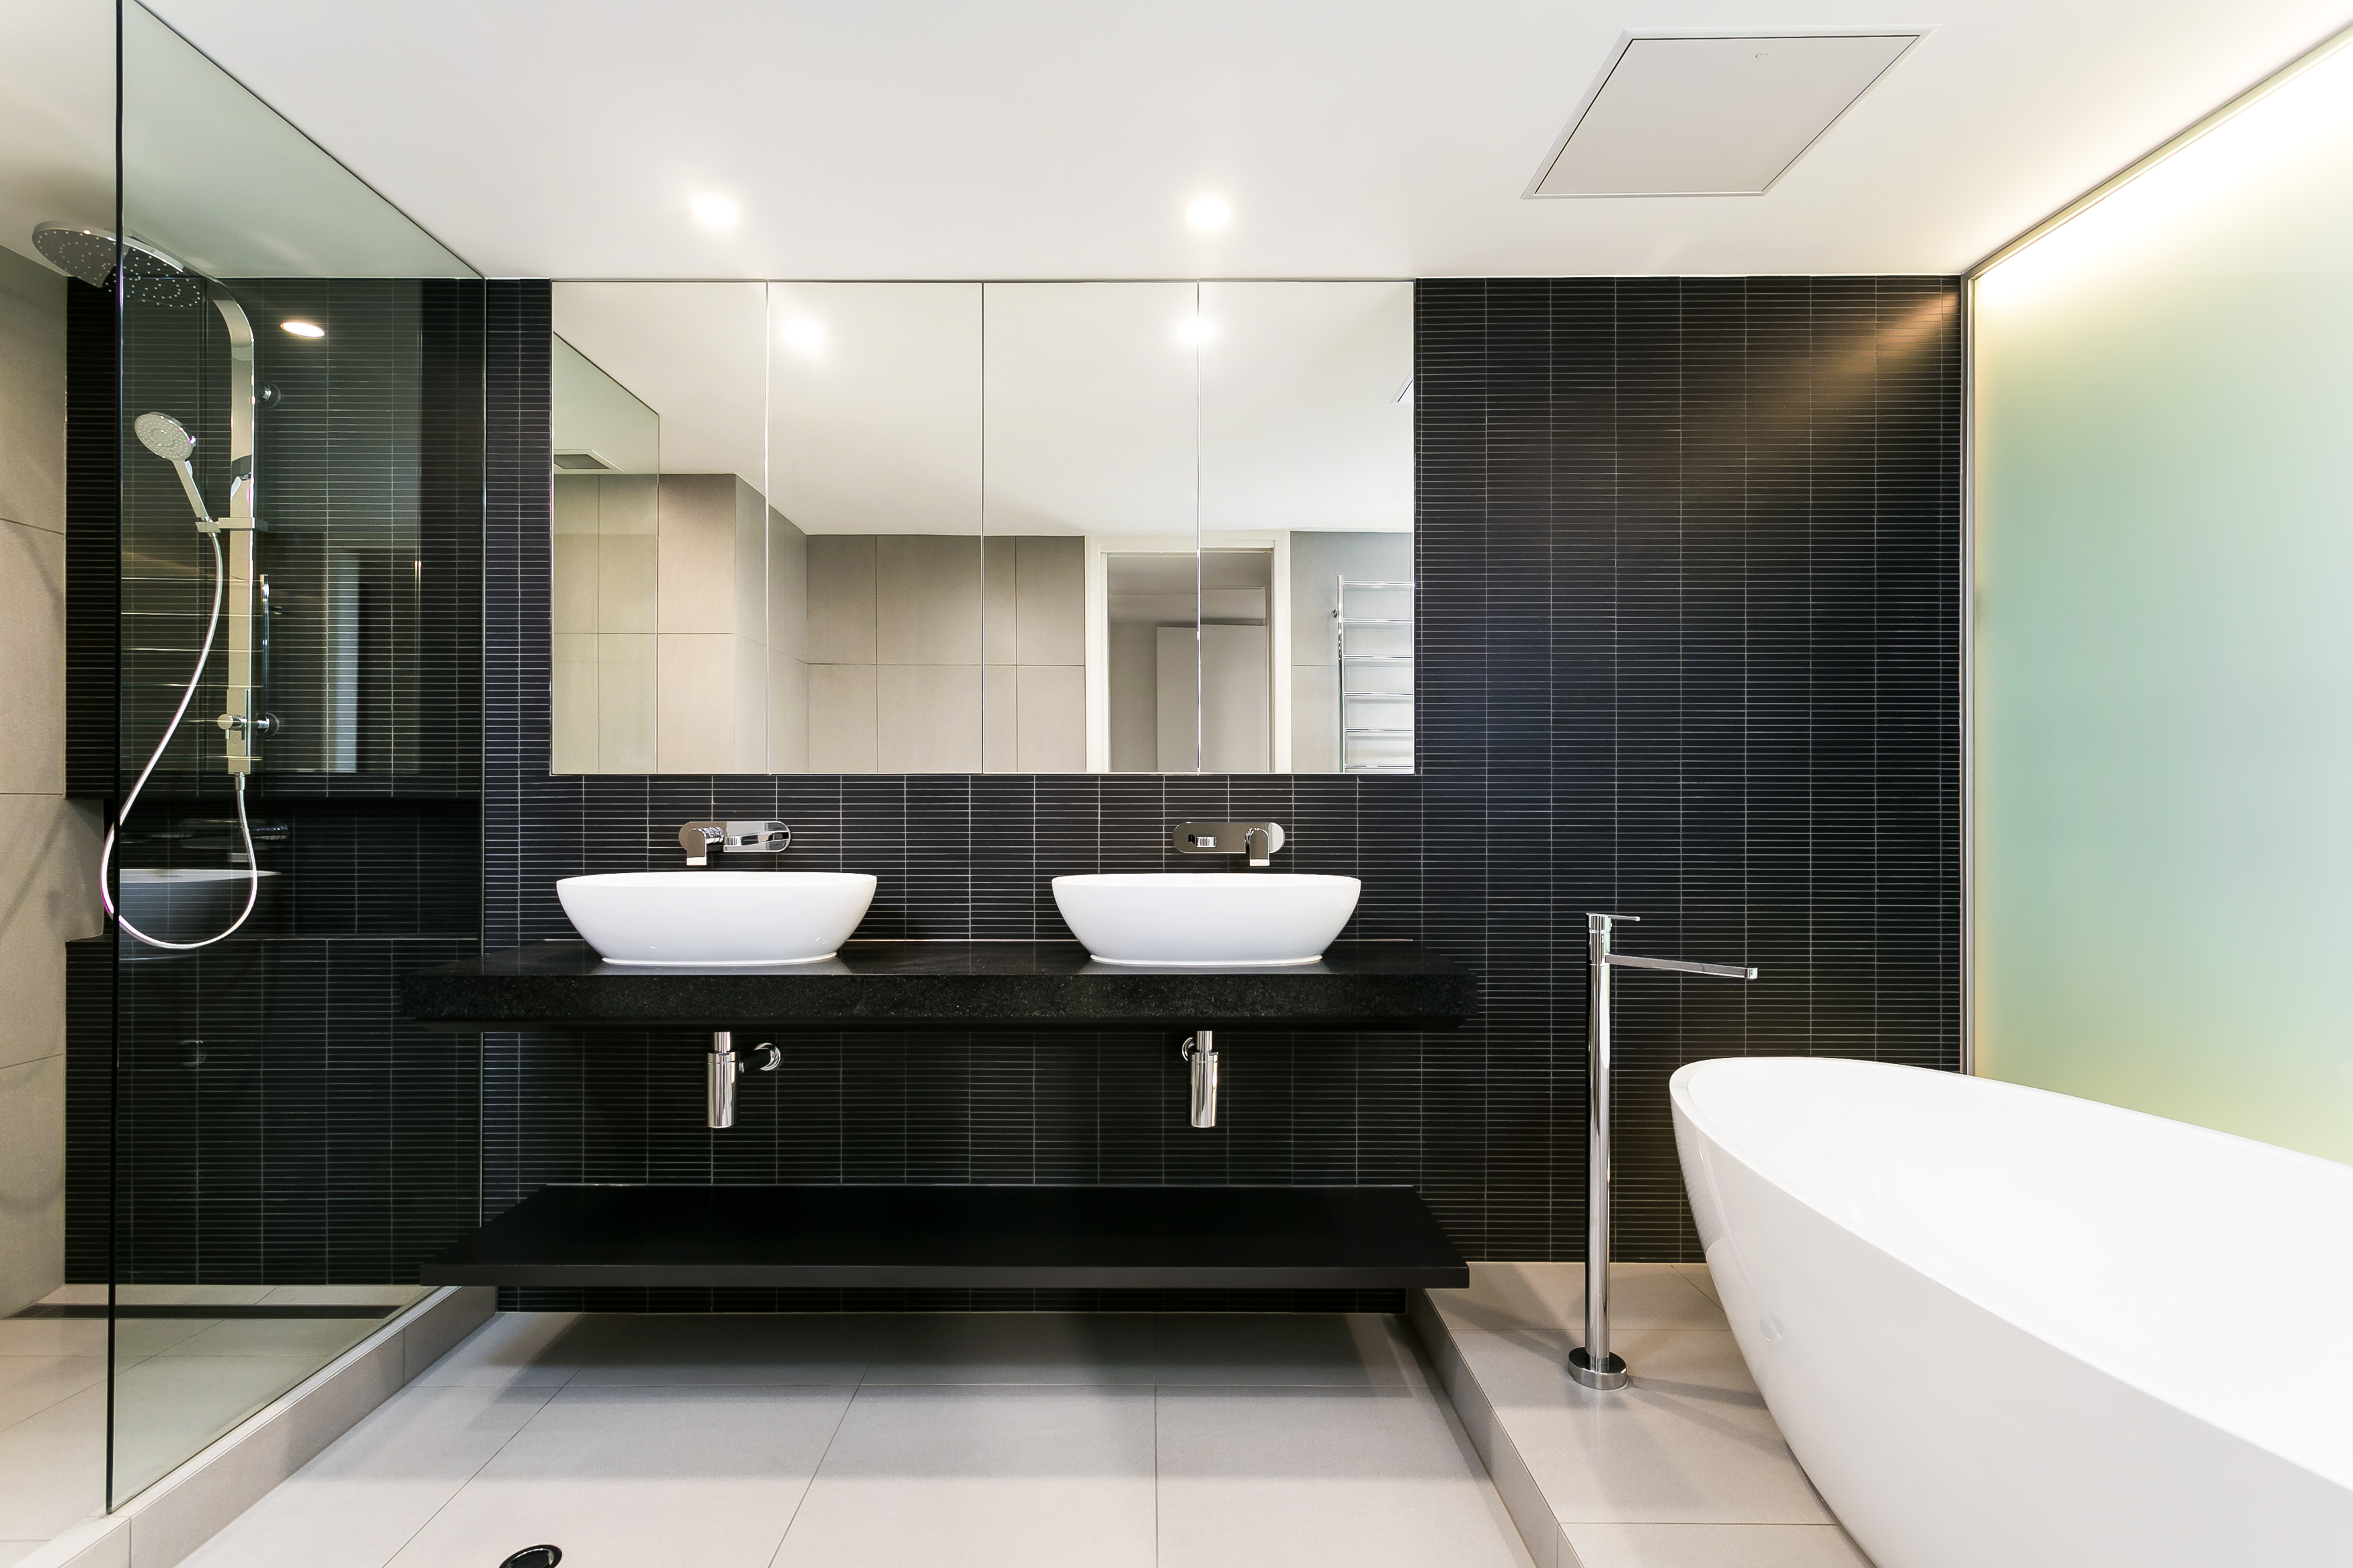 The primary bath hosts a high contrast mixture of tones, with black tiled wall over off-white large format beige floor tiling, plus white pedestal tub and vessel sinks. The floating black vanity hangs next to a large glass enclosed shower.